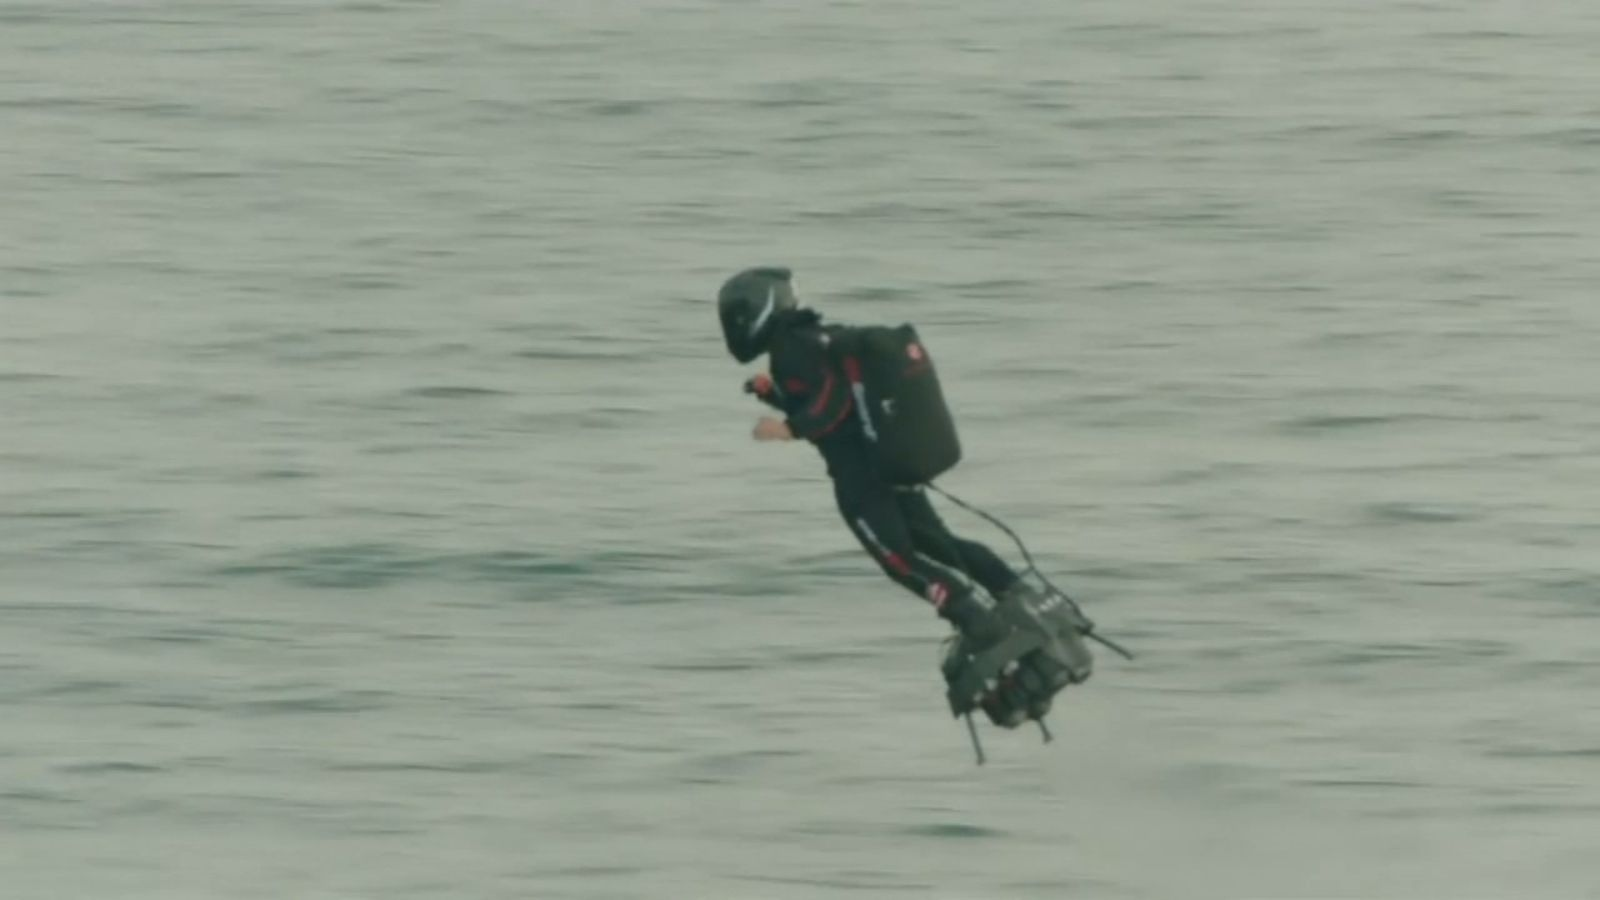 French Hoverboard Inventor Franky Zapata Successfully Flies Over English Channel For The First Time Abc7ny Com English Channel Hoverboard Flyboard